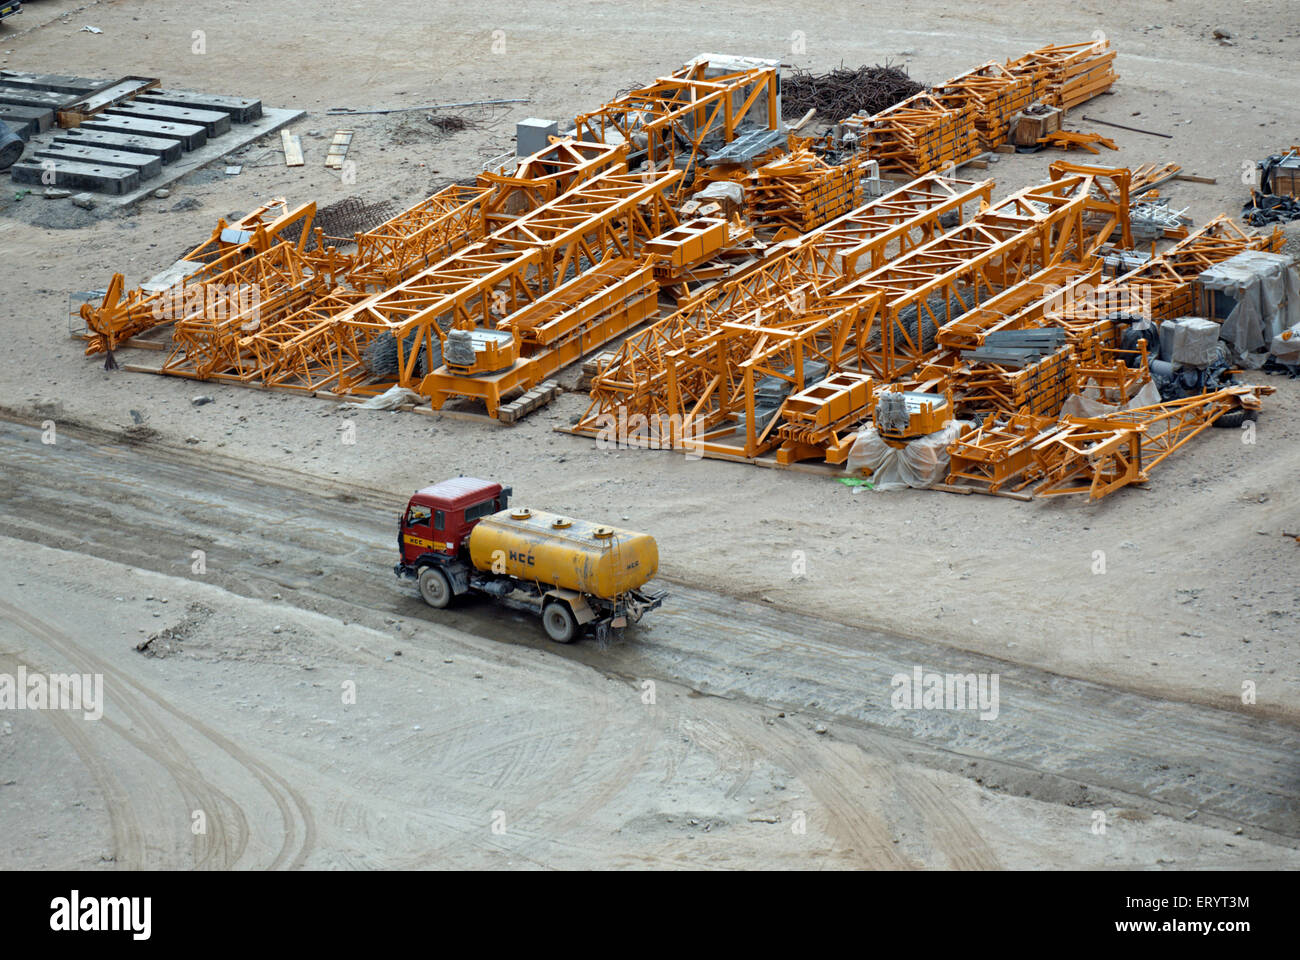 Oil tanker and heavy metal equipment at nimo bazgo hydraulic project ; Leh ; Ladakh ; Jammu and Kashmir ; India - Stock Image